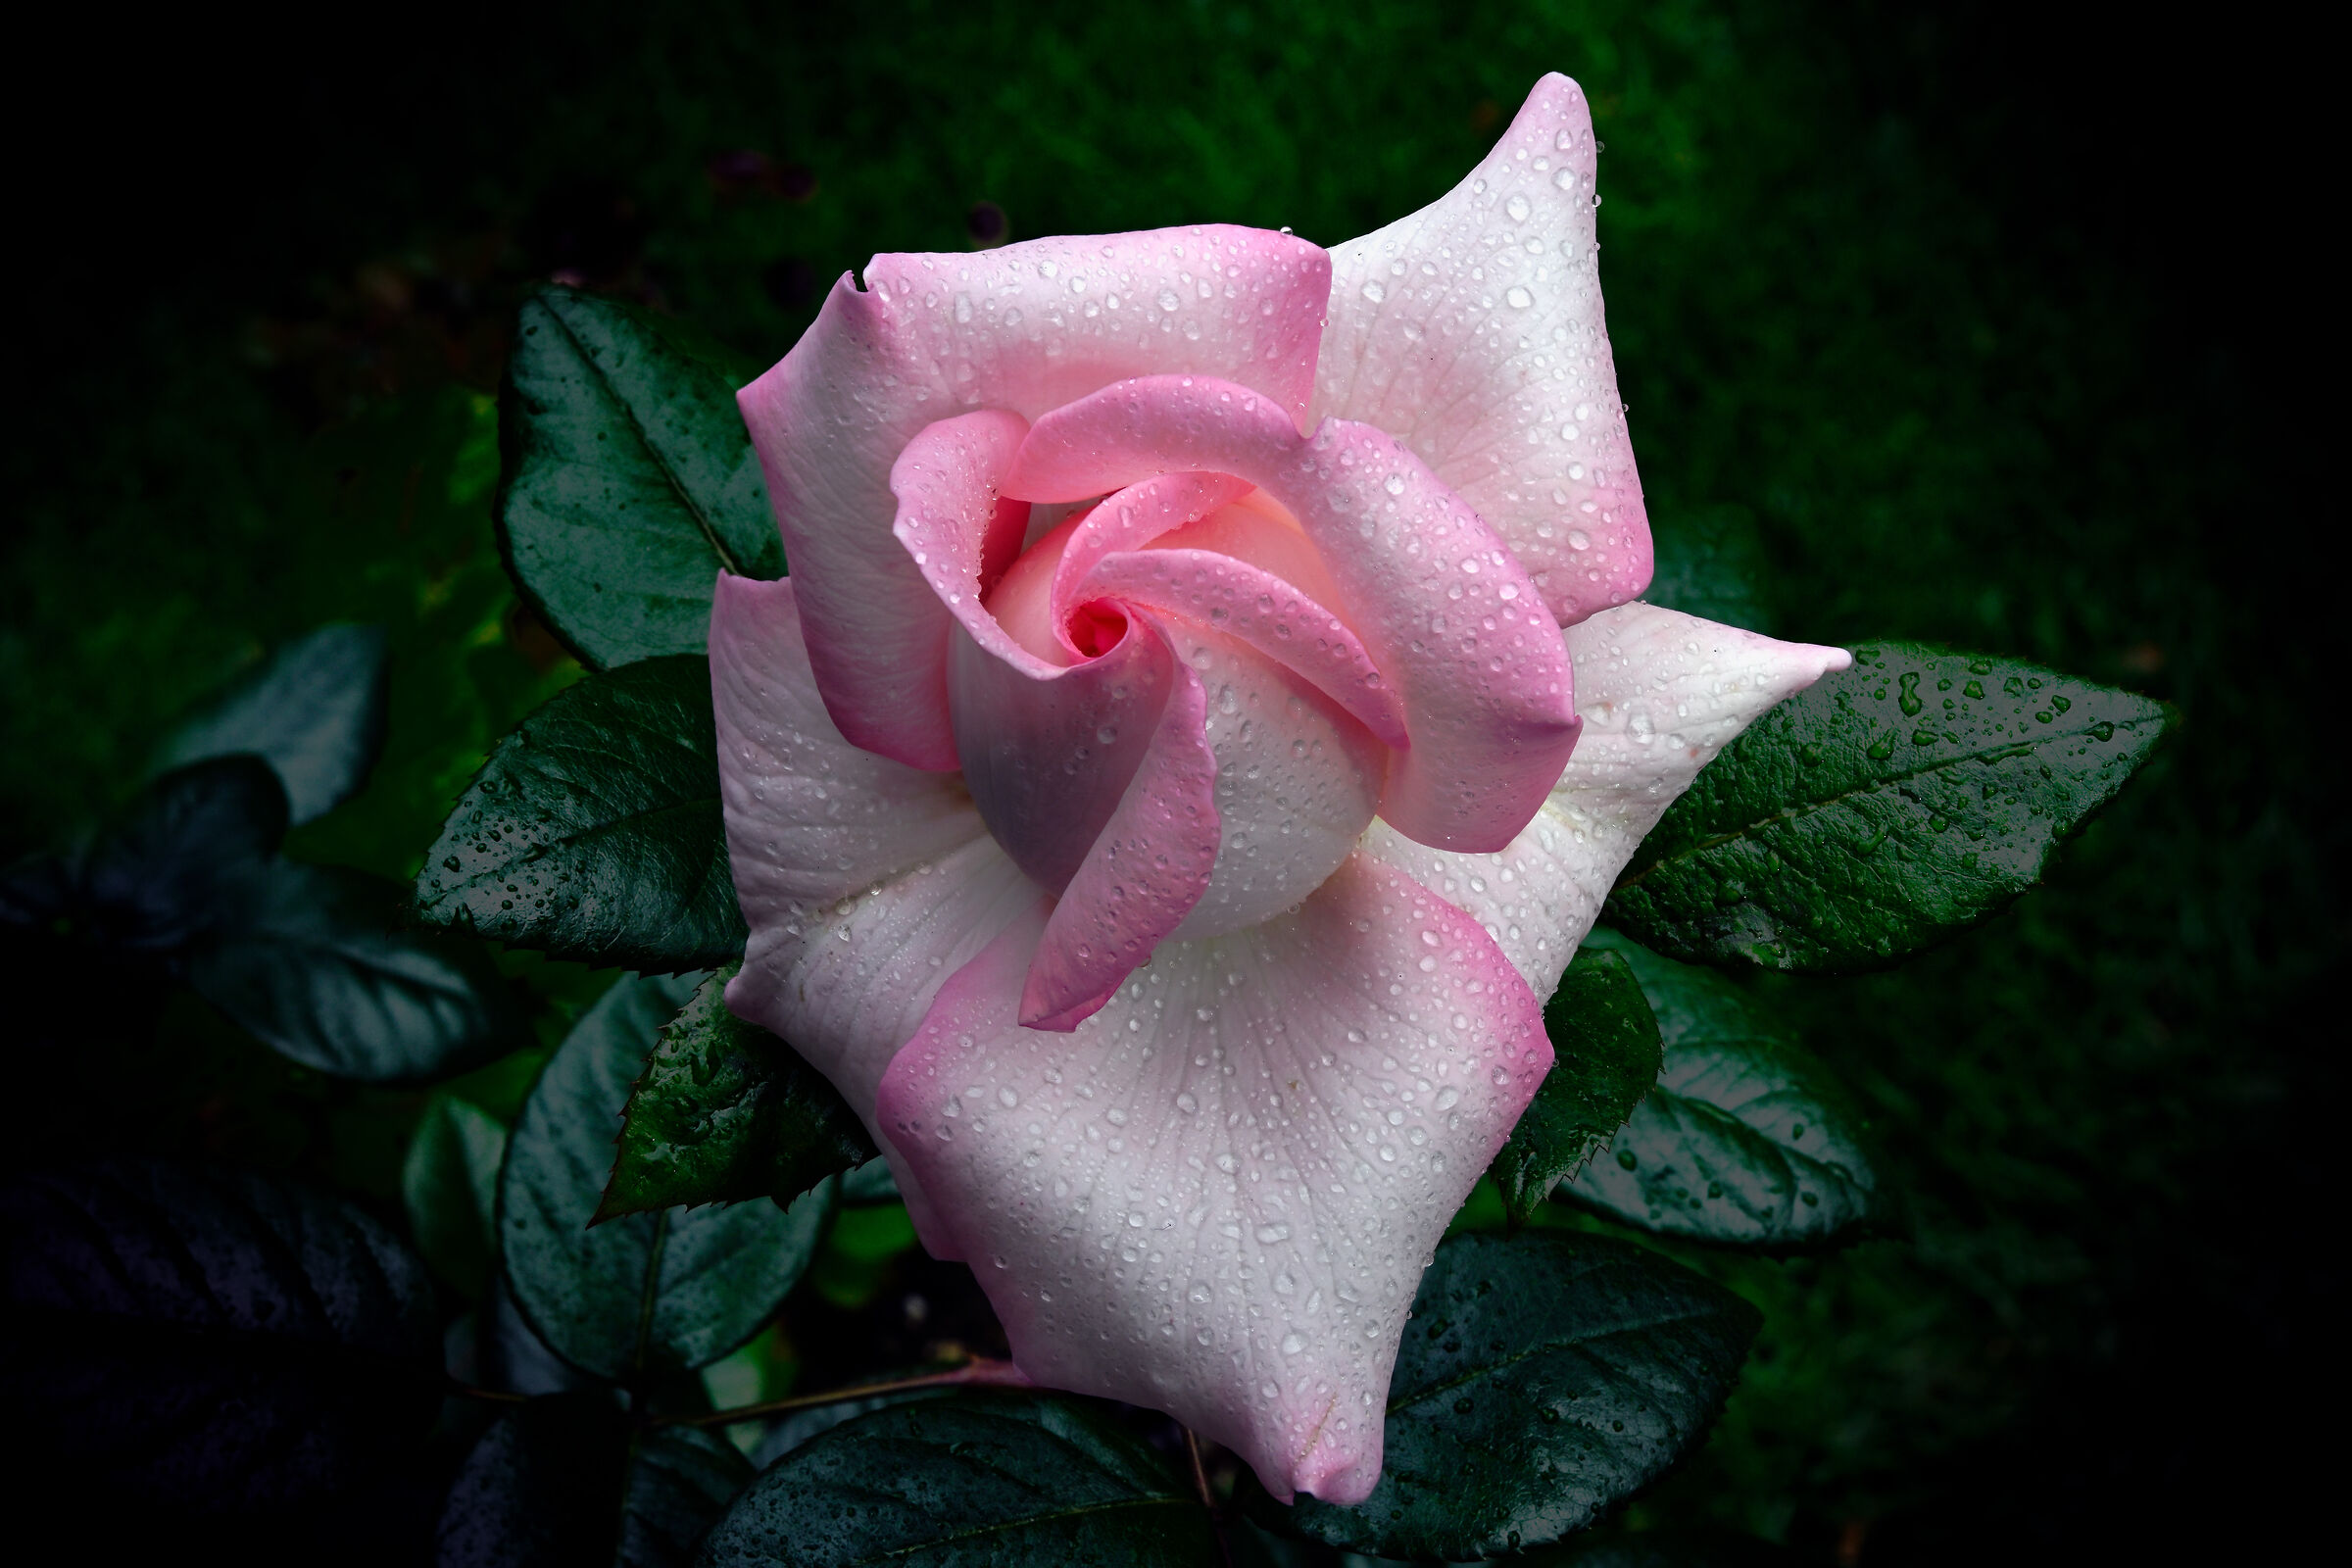 The most fragrant rose 2...